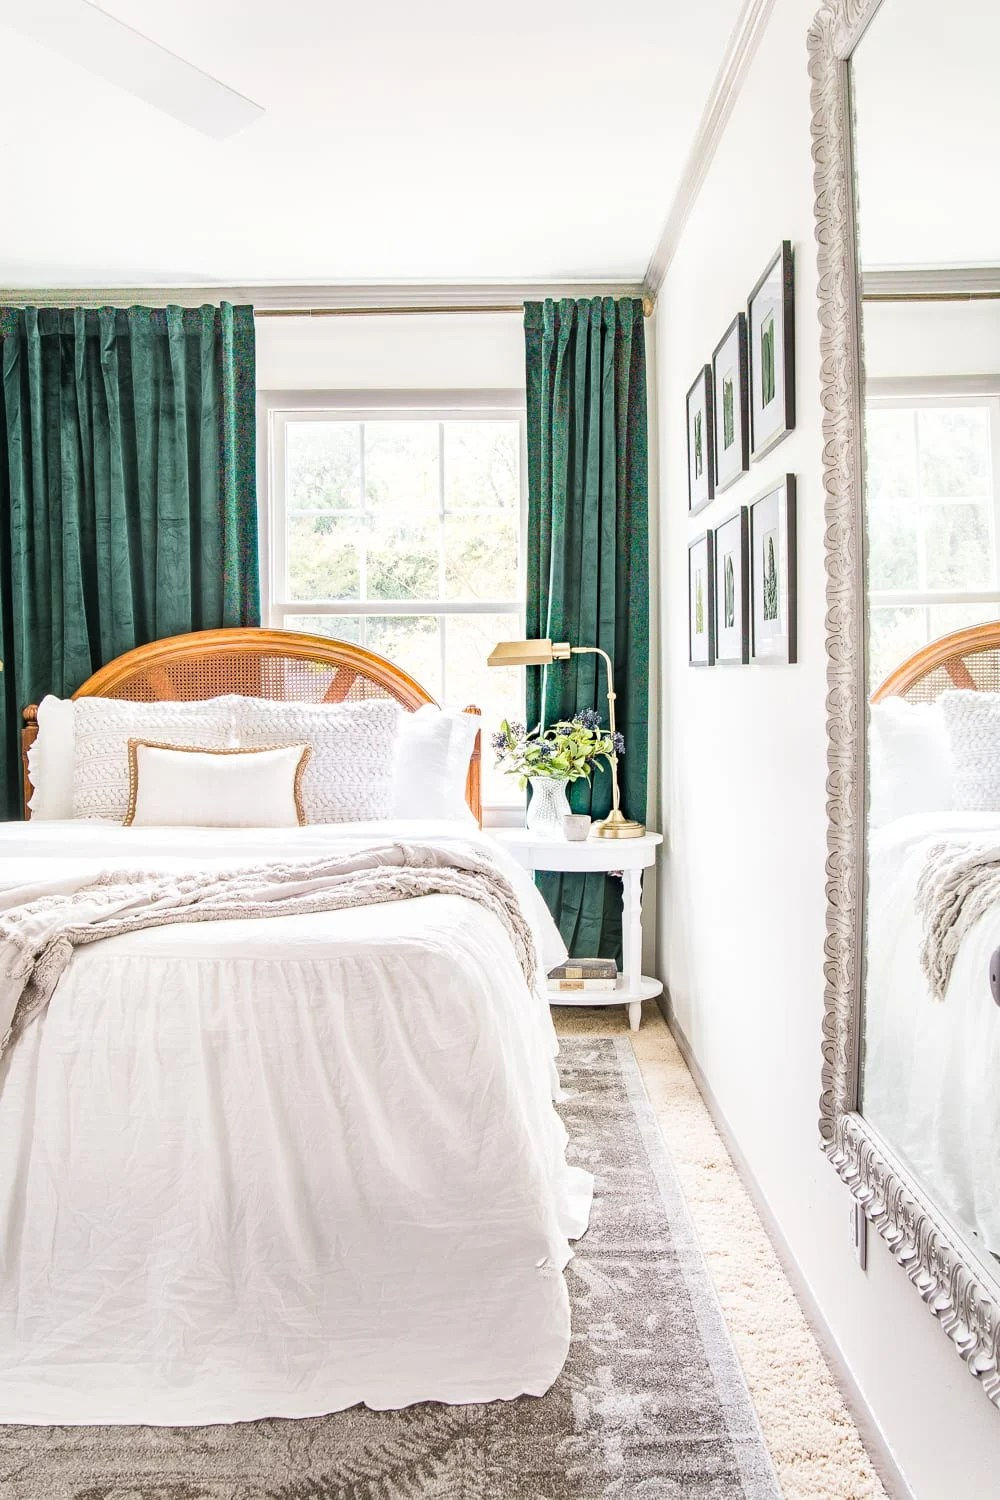 A boring guest bedroom gets a luxe, vintage chic makeover using thrifty projects, budget finds, and simple decorating tricks to maximize style and space. #guestbedroom #bedroominspiration #bedroomdecor